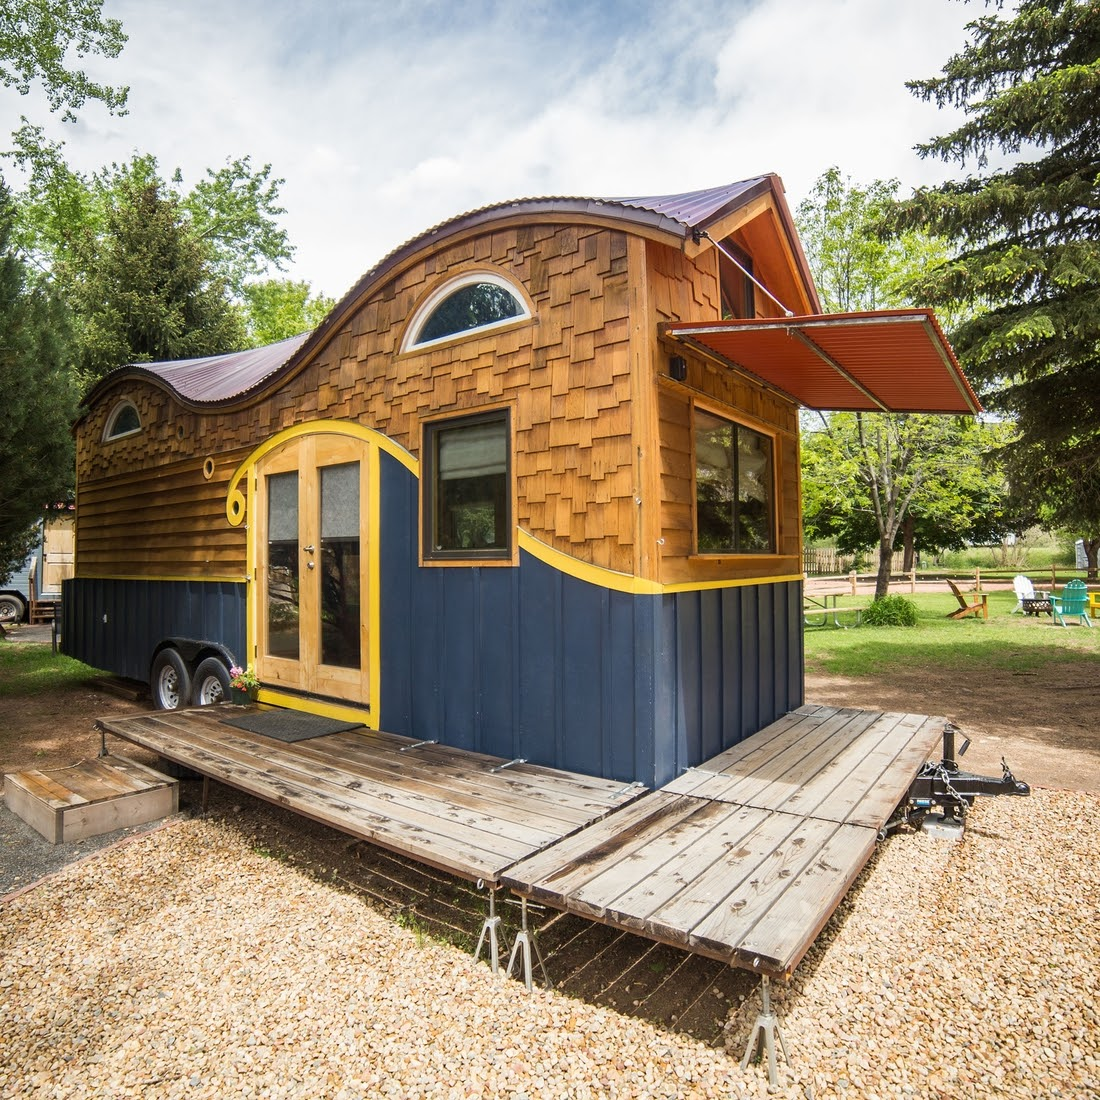 13-Front-Exterior-View-WeeCasa-The-Pequod-Tiny-House-Architecture-www-designstack-co